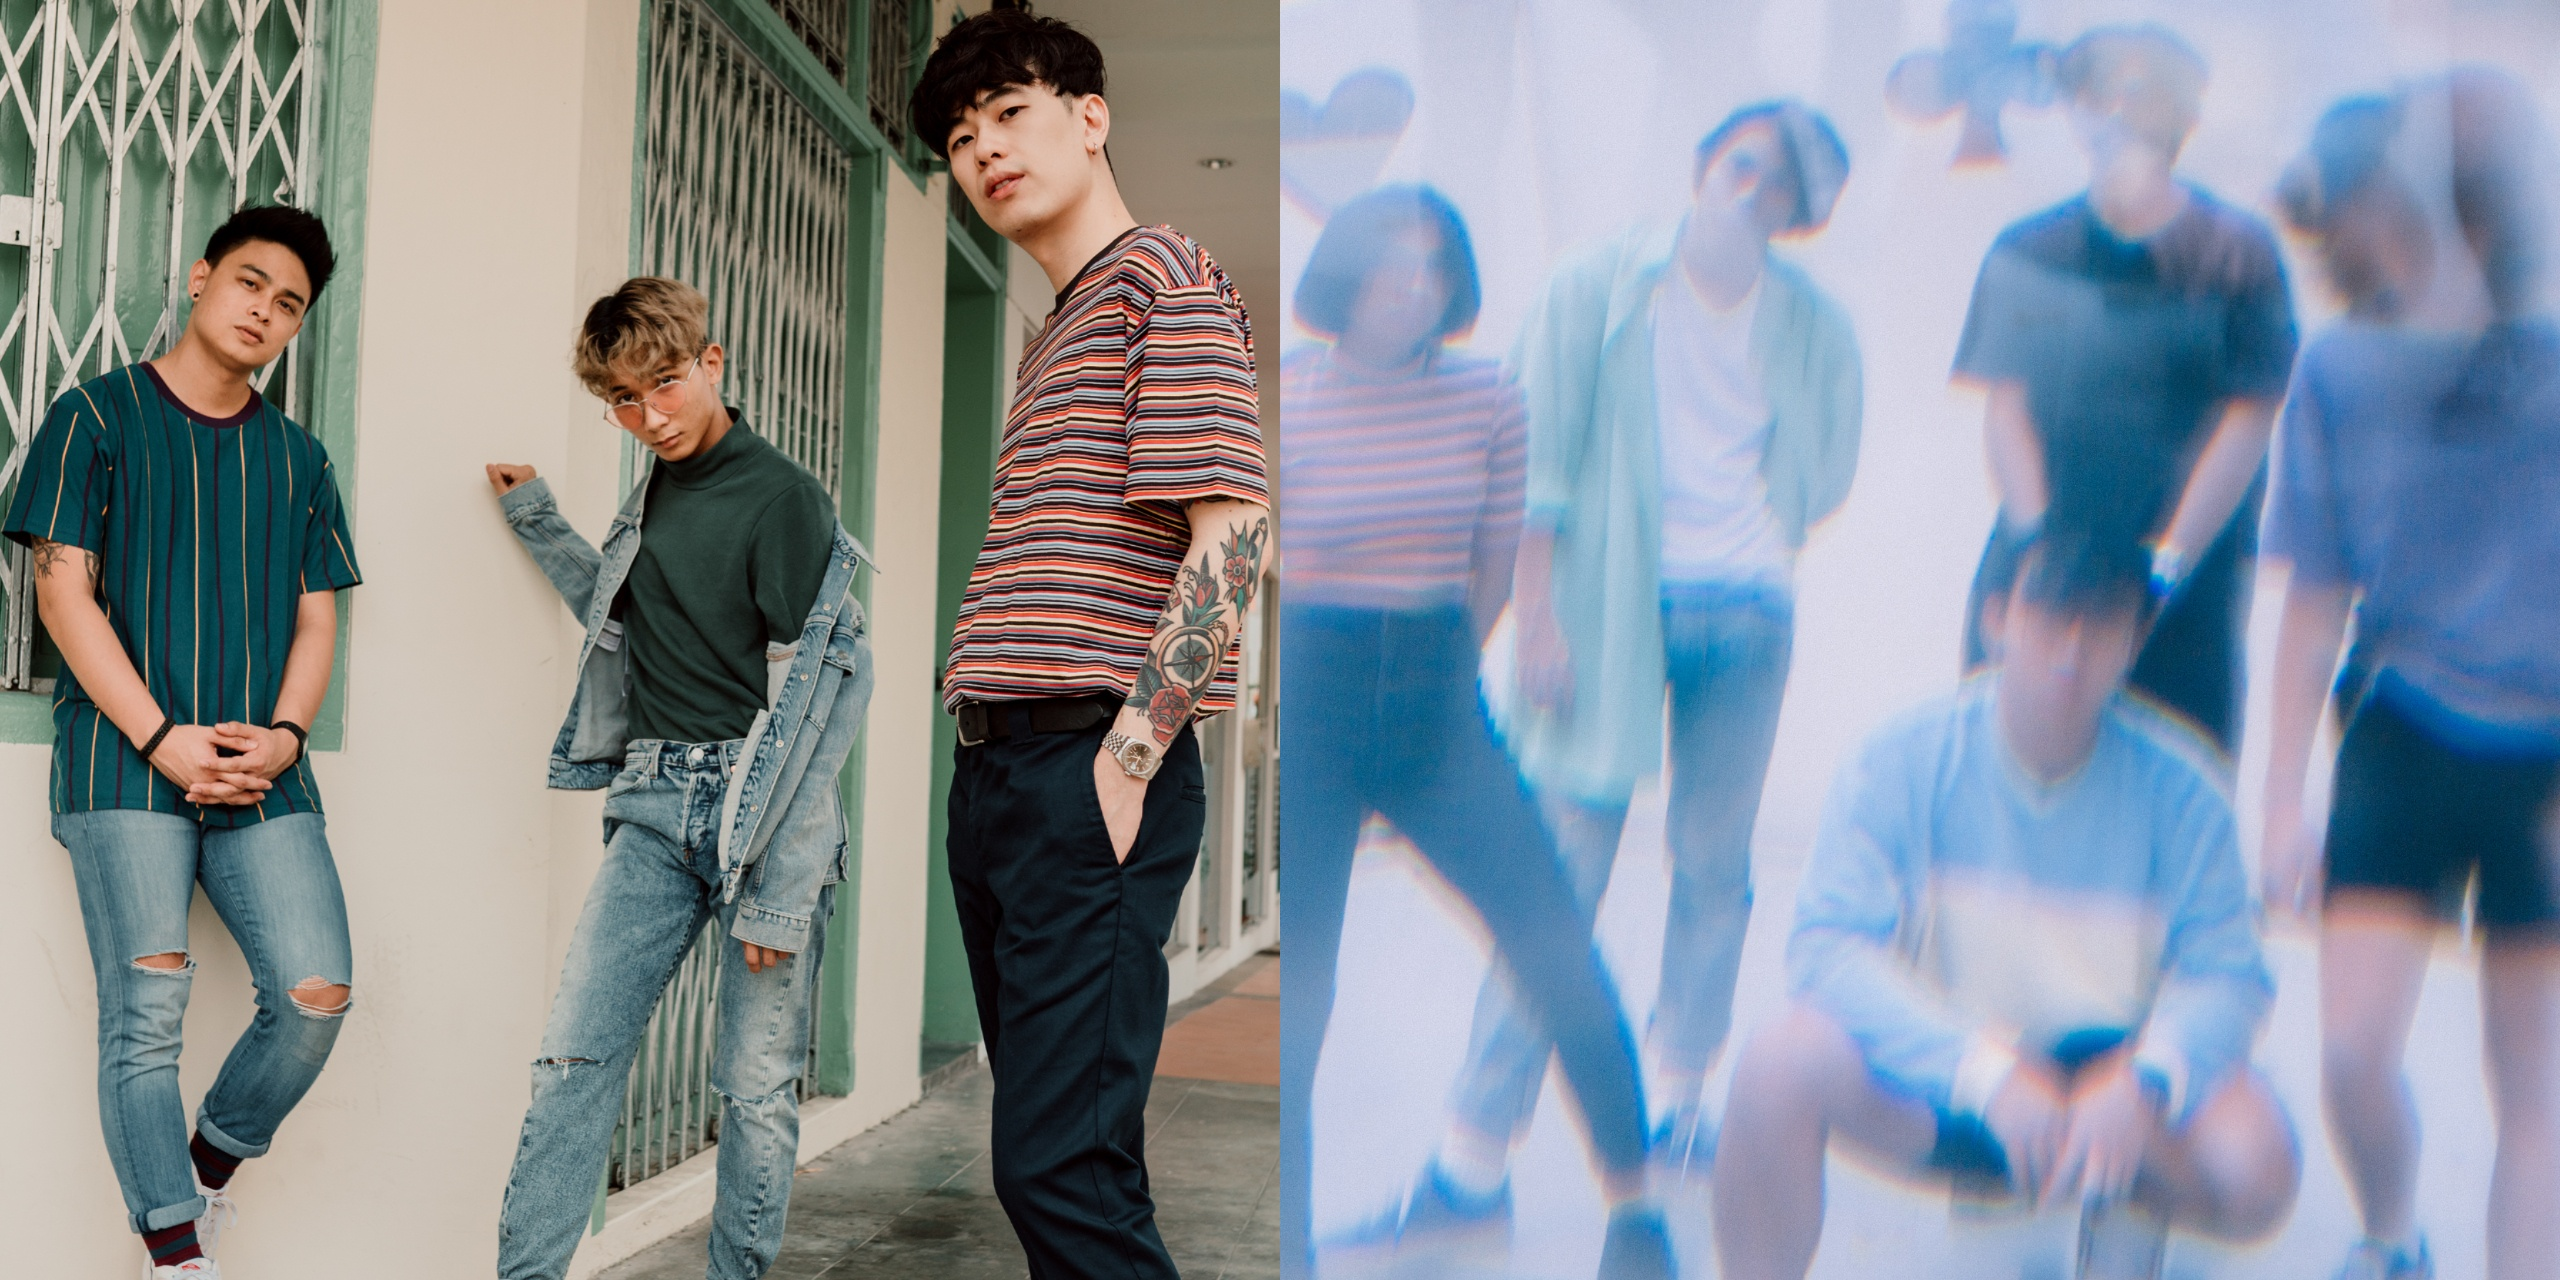 Bandwagon Campus Tour comes to SMU for Starry Nite – brb., Subsonic Eye and more to perform